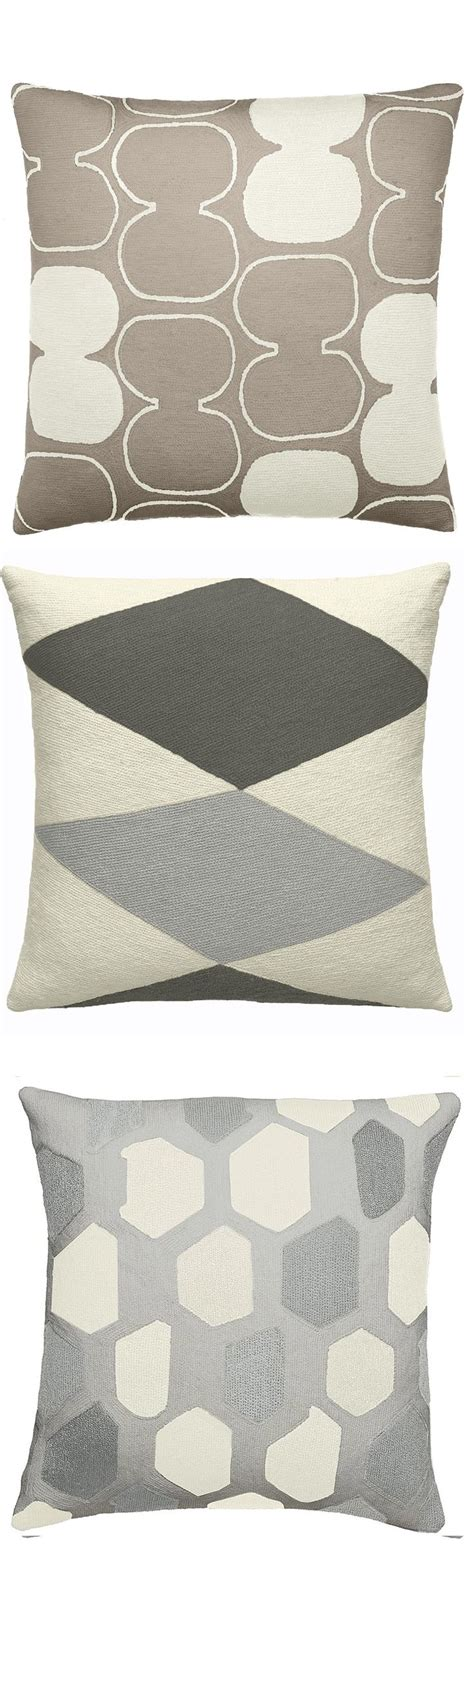 accent pillows for grey sofa 17 best images about gray pillows on sofa